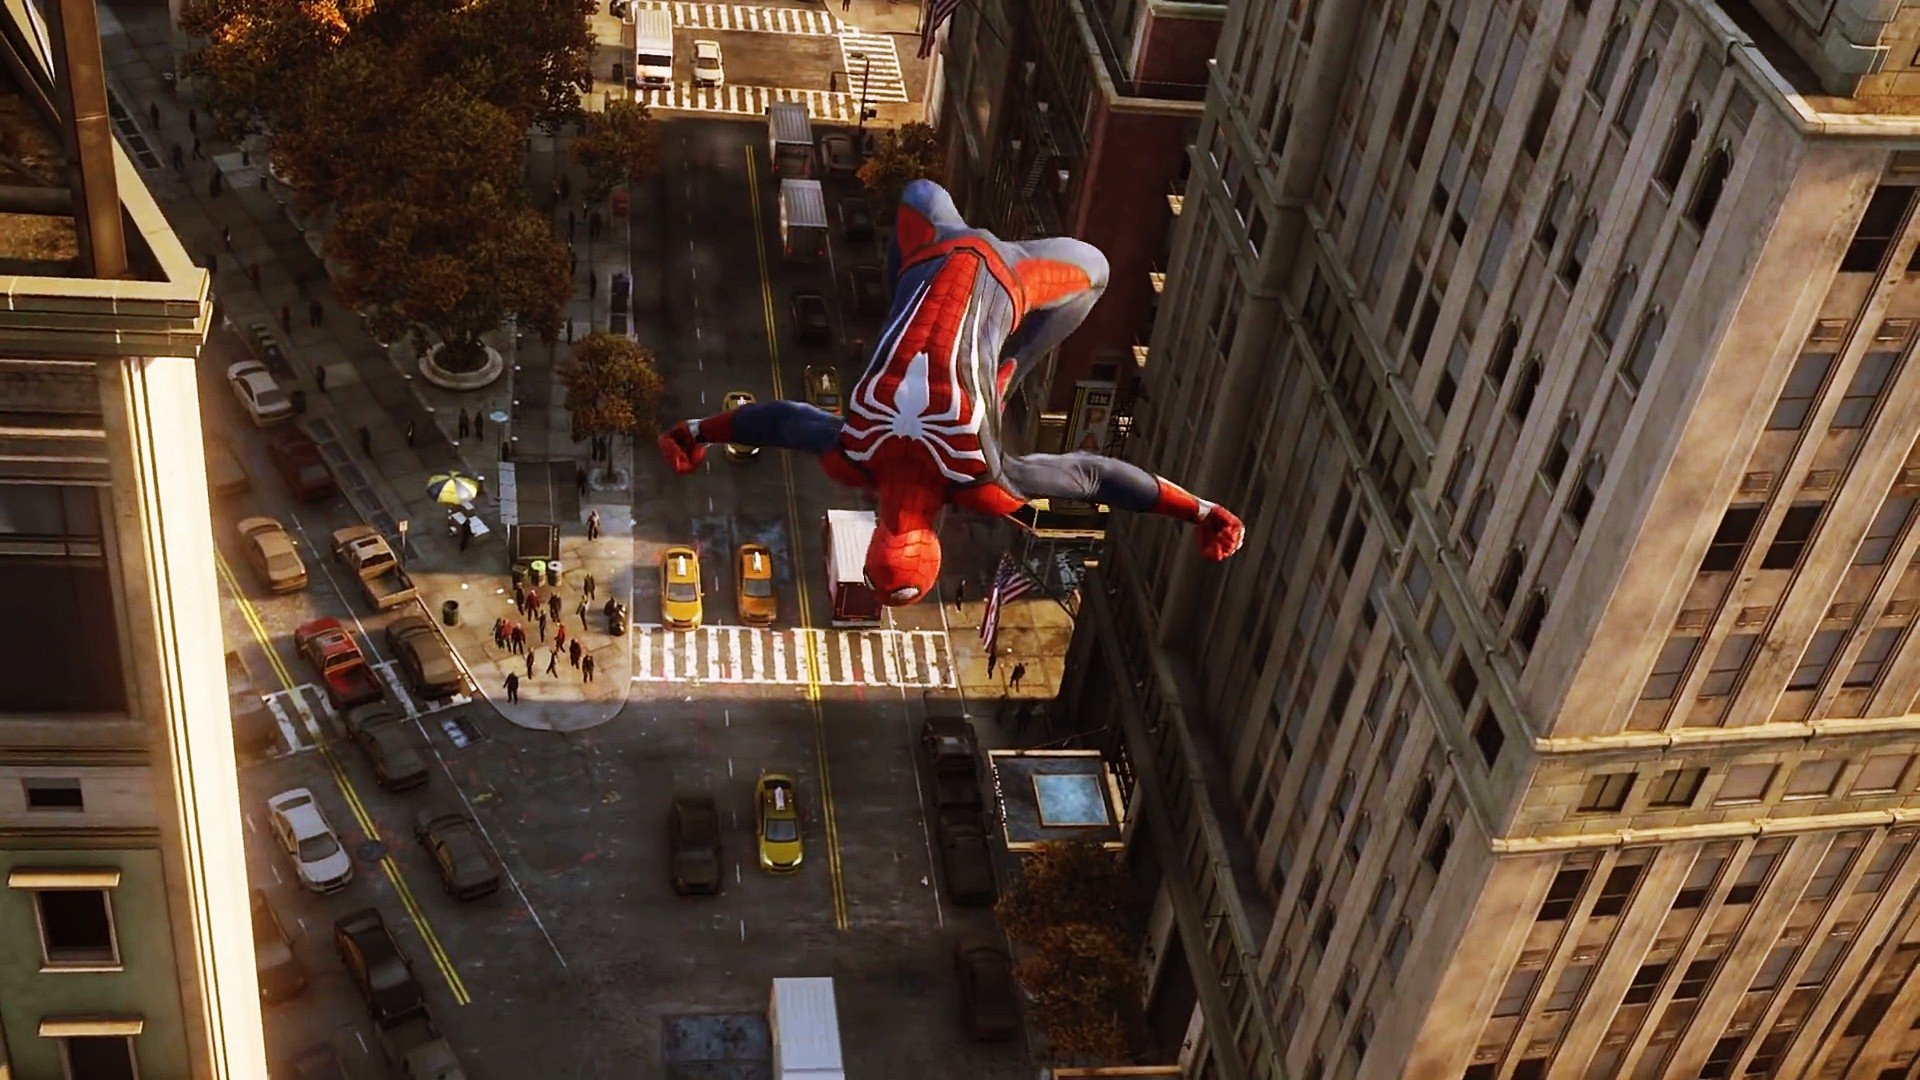 Game Of Spider Man Hd Wallpaper: Spider-Man (PS4) HD Wallpaper